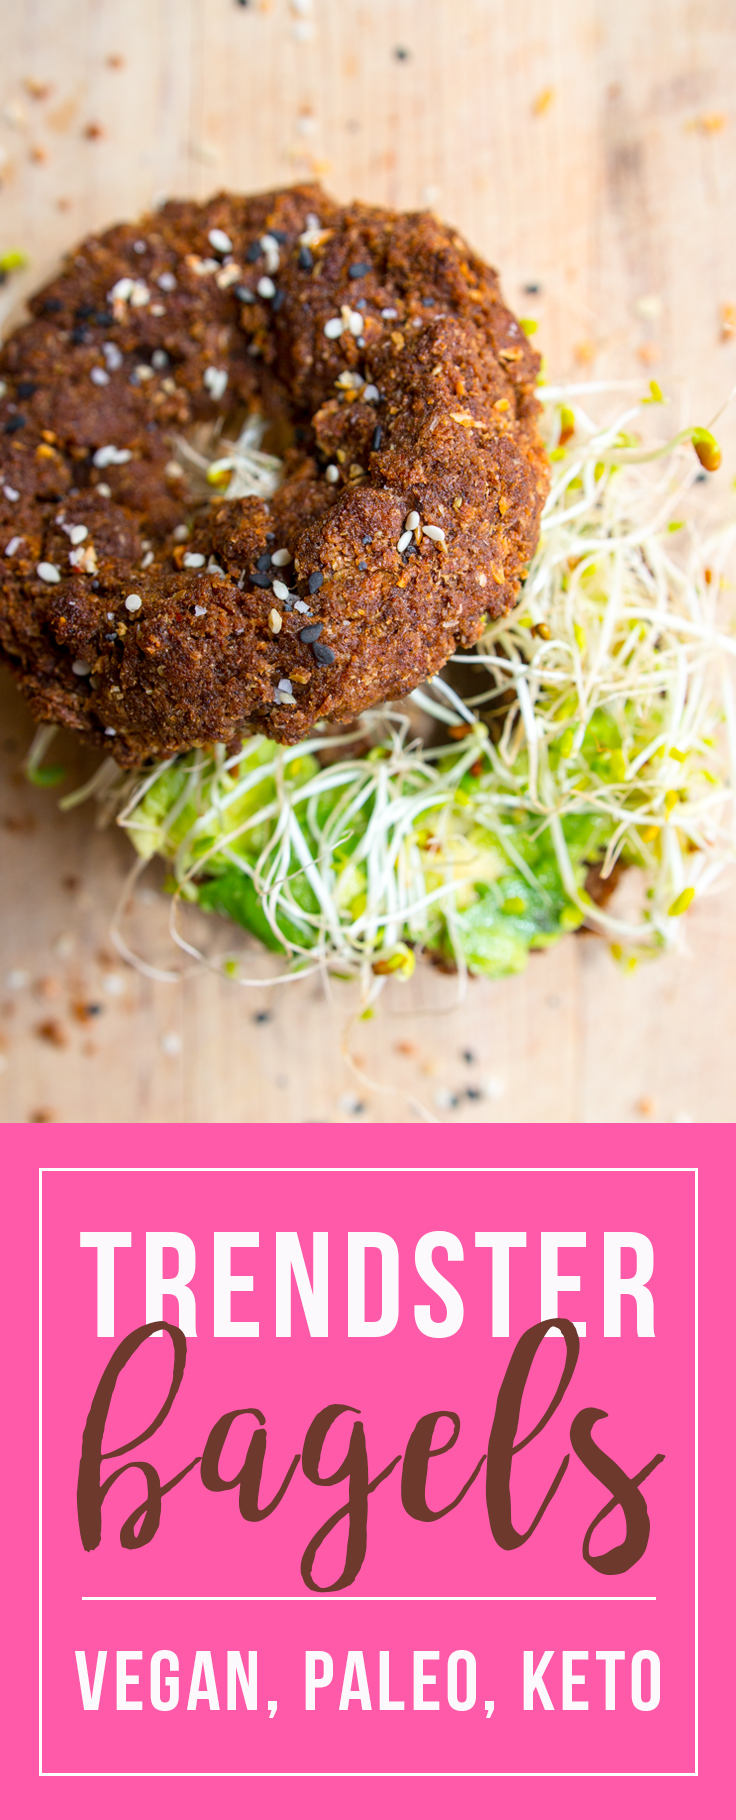 Trendster Bagels: vegan, paleo, and keto... enjoy! ☺️